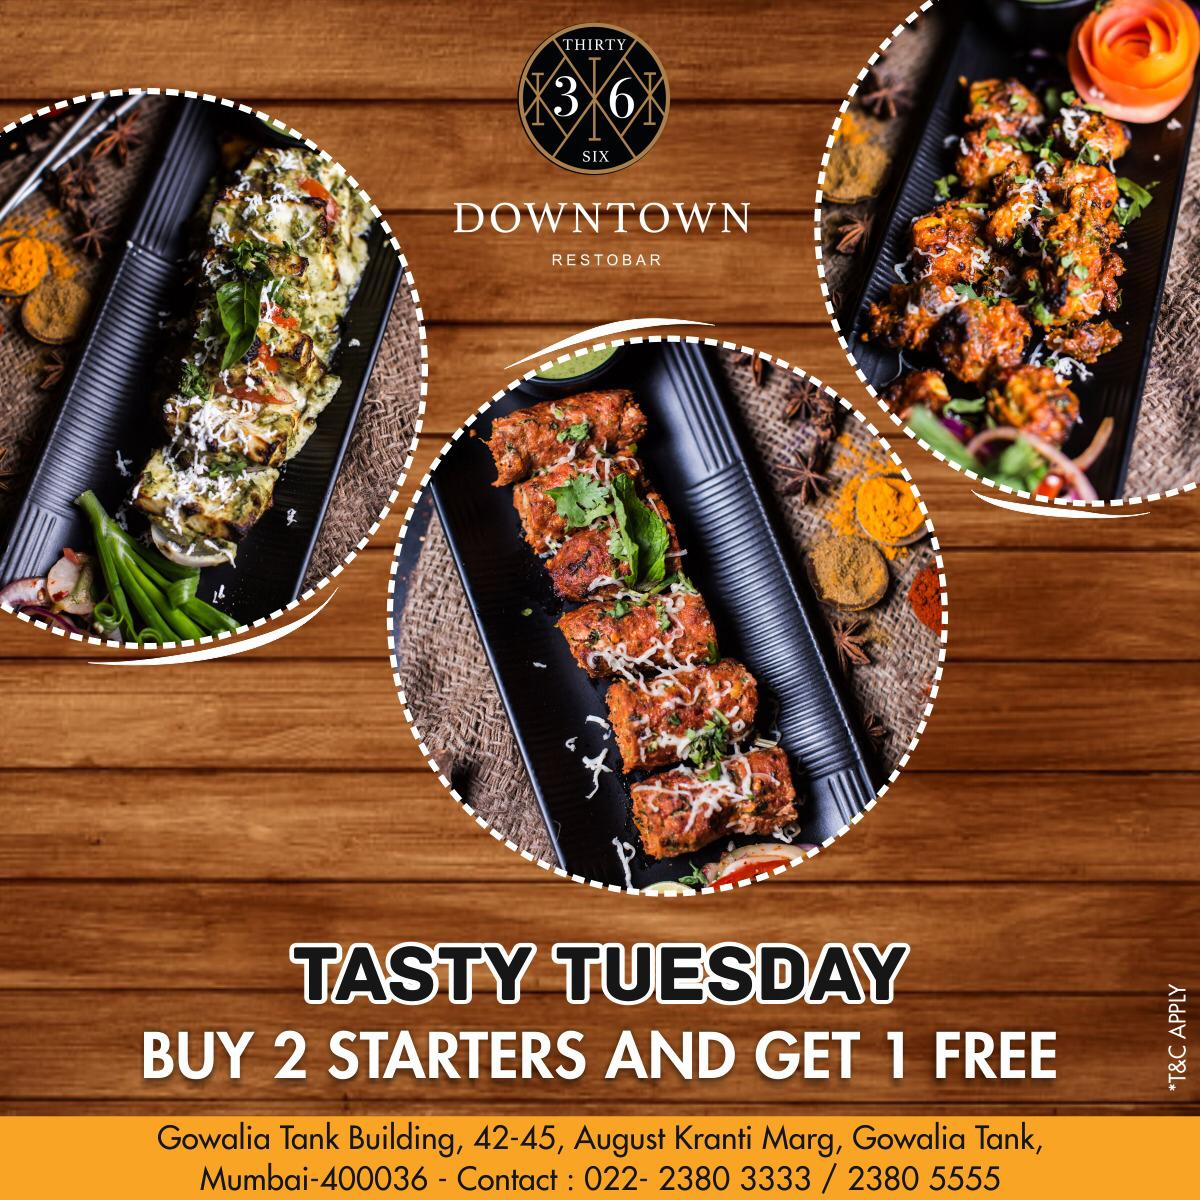 Tuesday's are always amazing, so join us in having tasty starters to keep your mouth watering😋 #36downtownrestobar #restobar #Livescreening #music #Multicuisinefood #bar #Hangout #mumbaifood #tuesday #bloggers #alldaydine #indianfoodtales #kempscorner #offerweek #starters